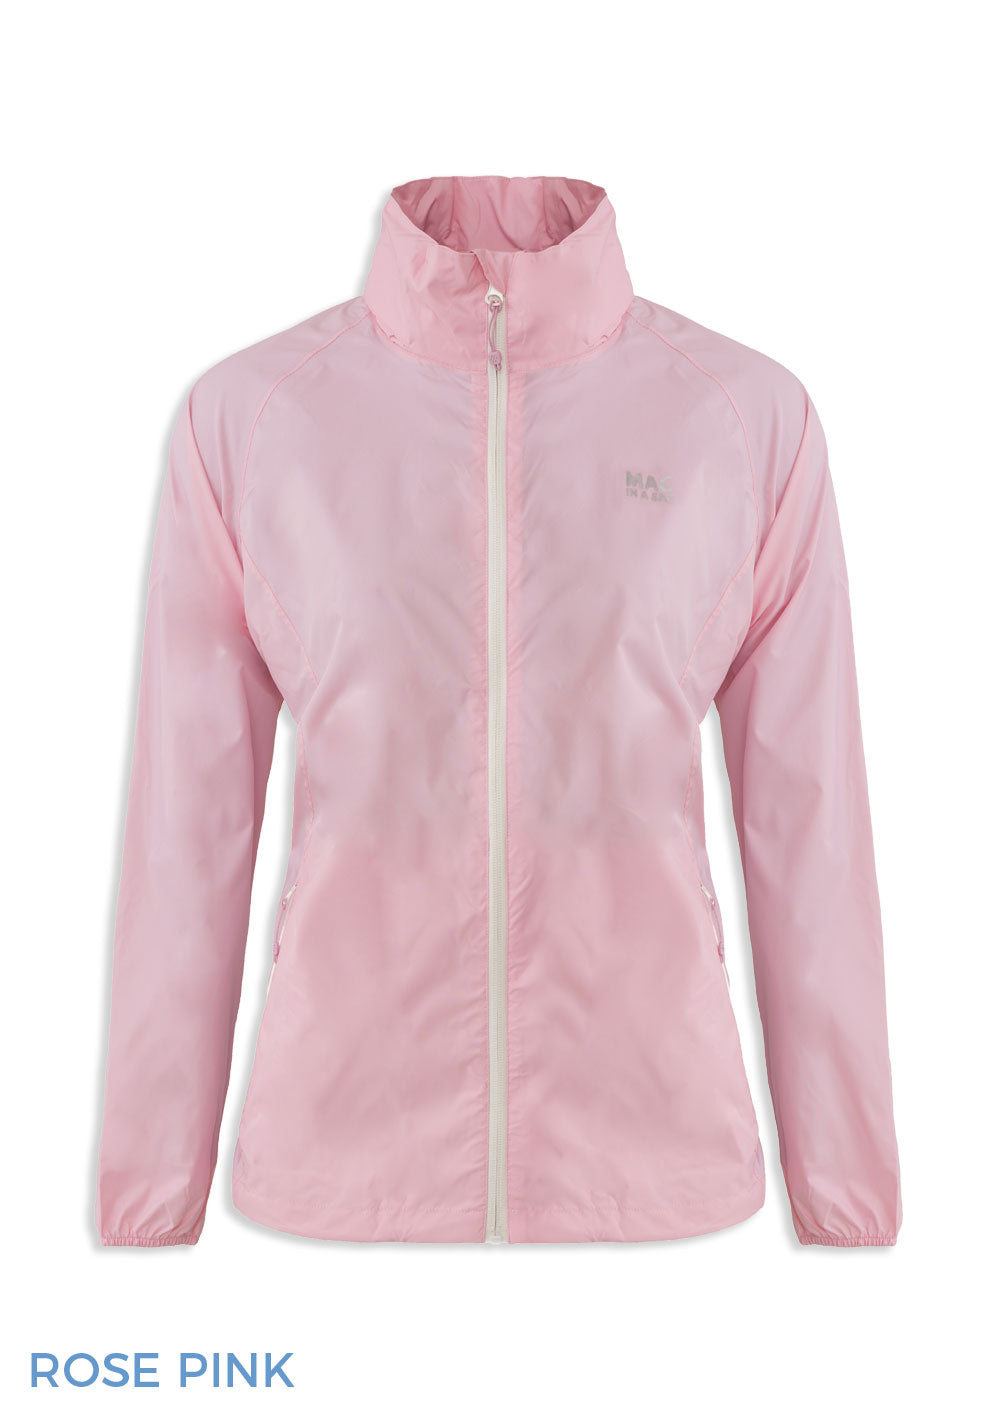 Rose Pink Packaway Waterproof Jacket by Lighthouse